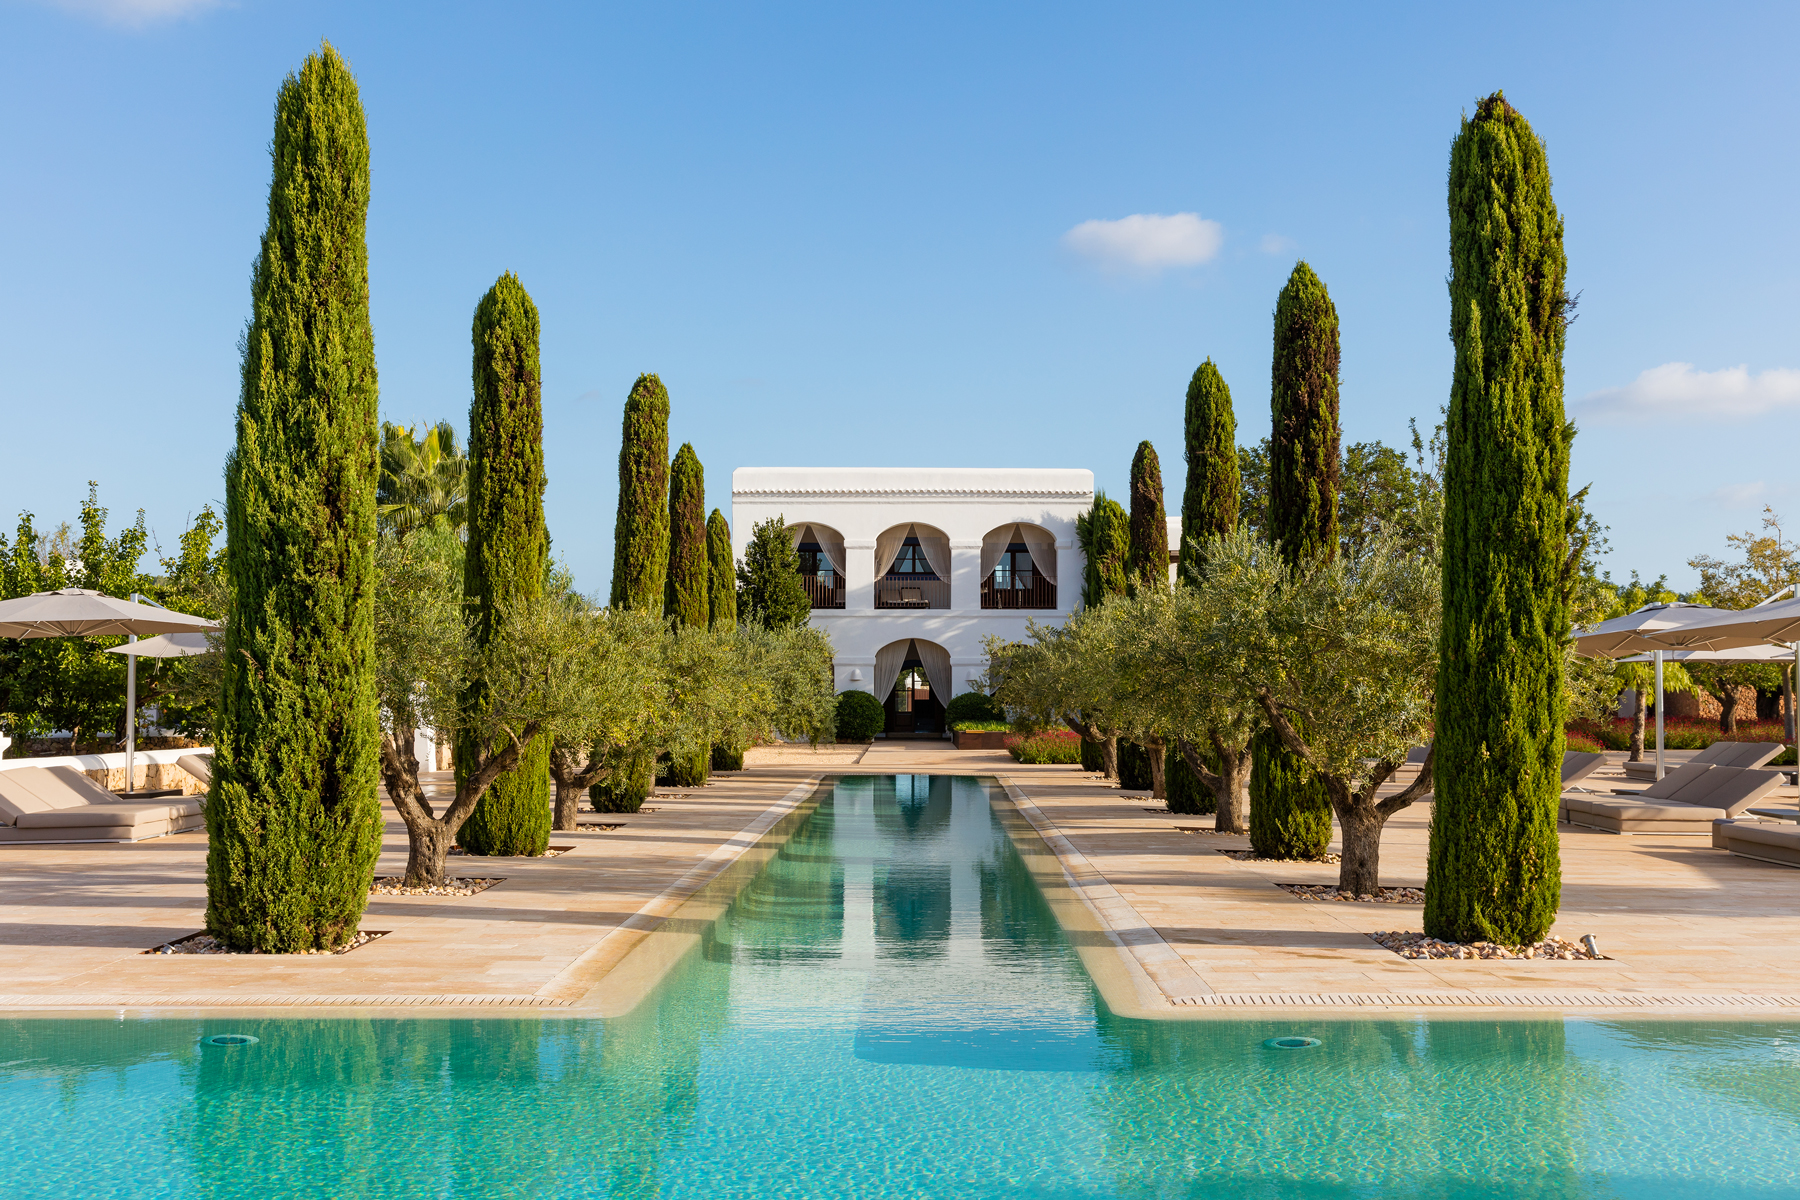 Ca Na Xica: A secluded and elegant bolthole in the Ibizan countryside